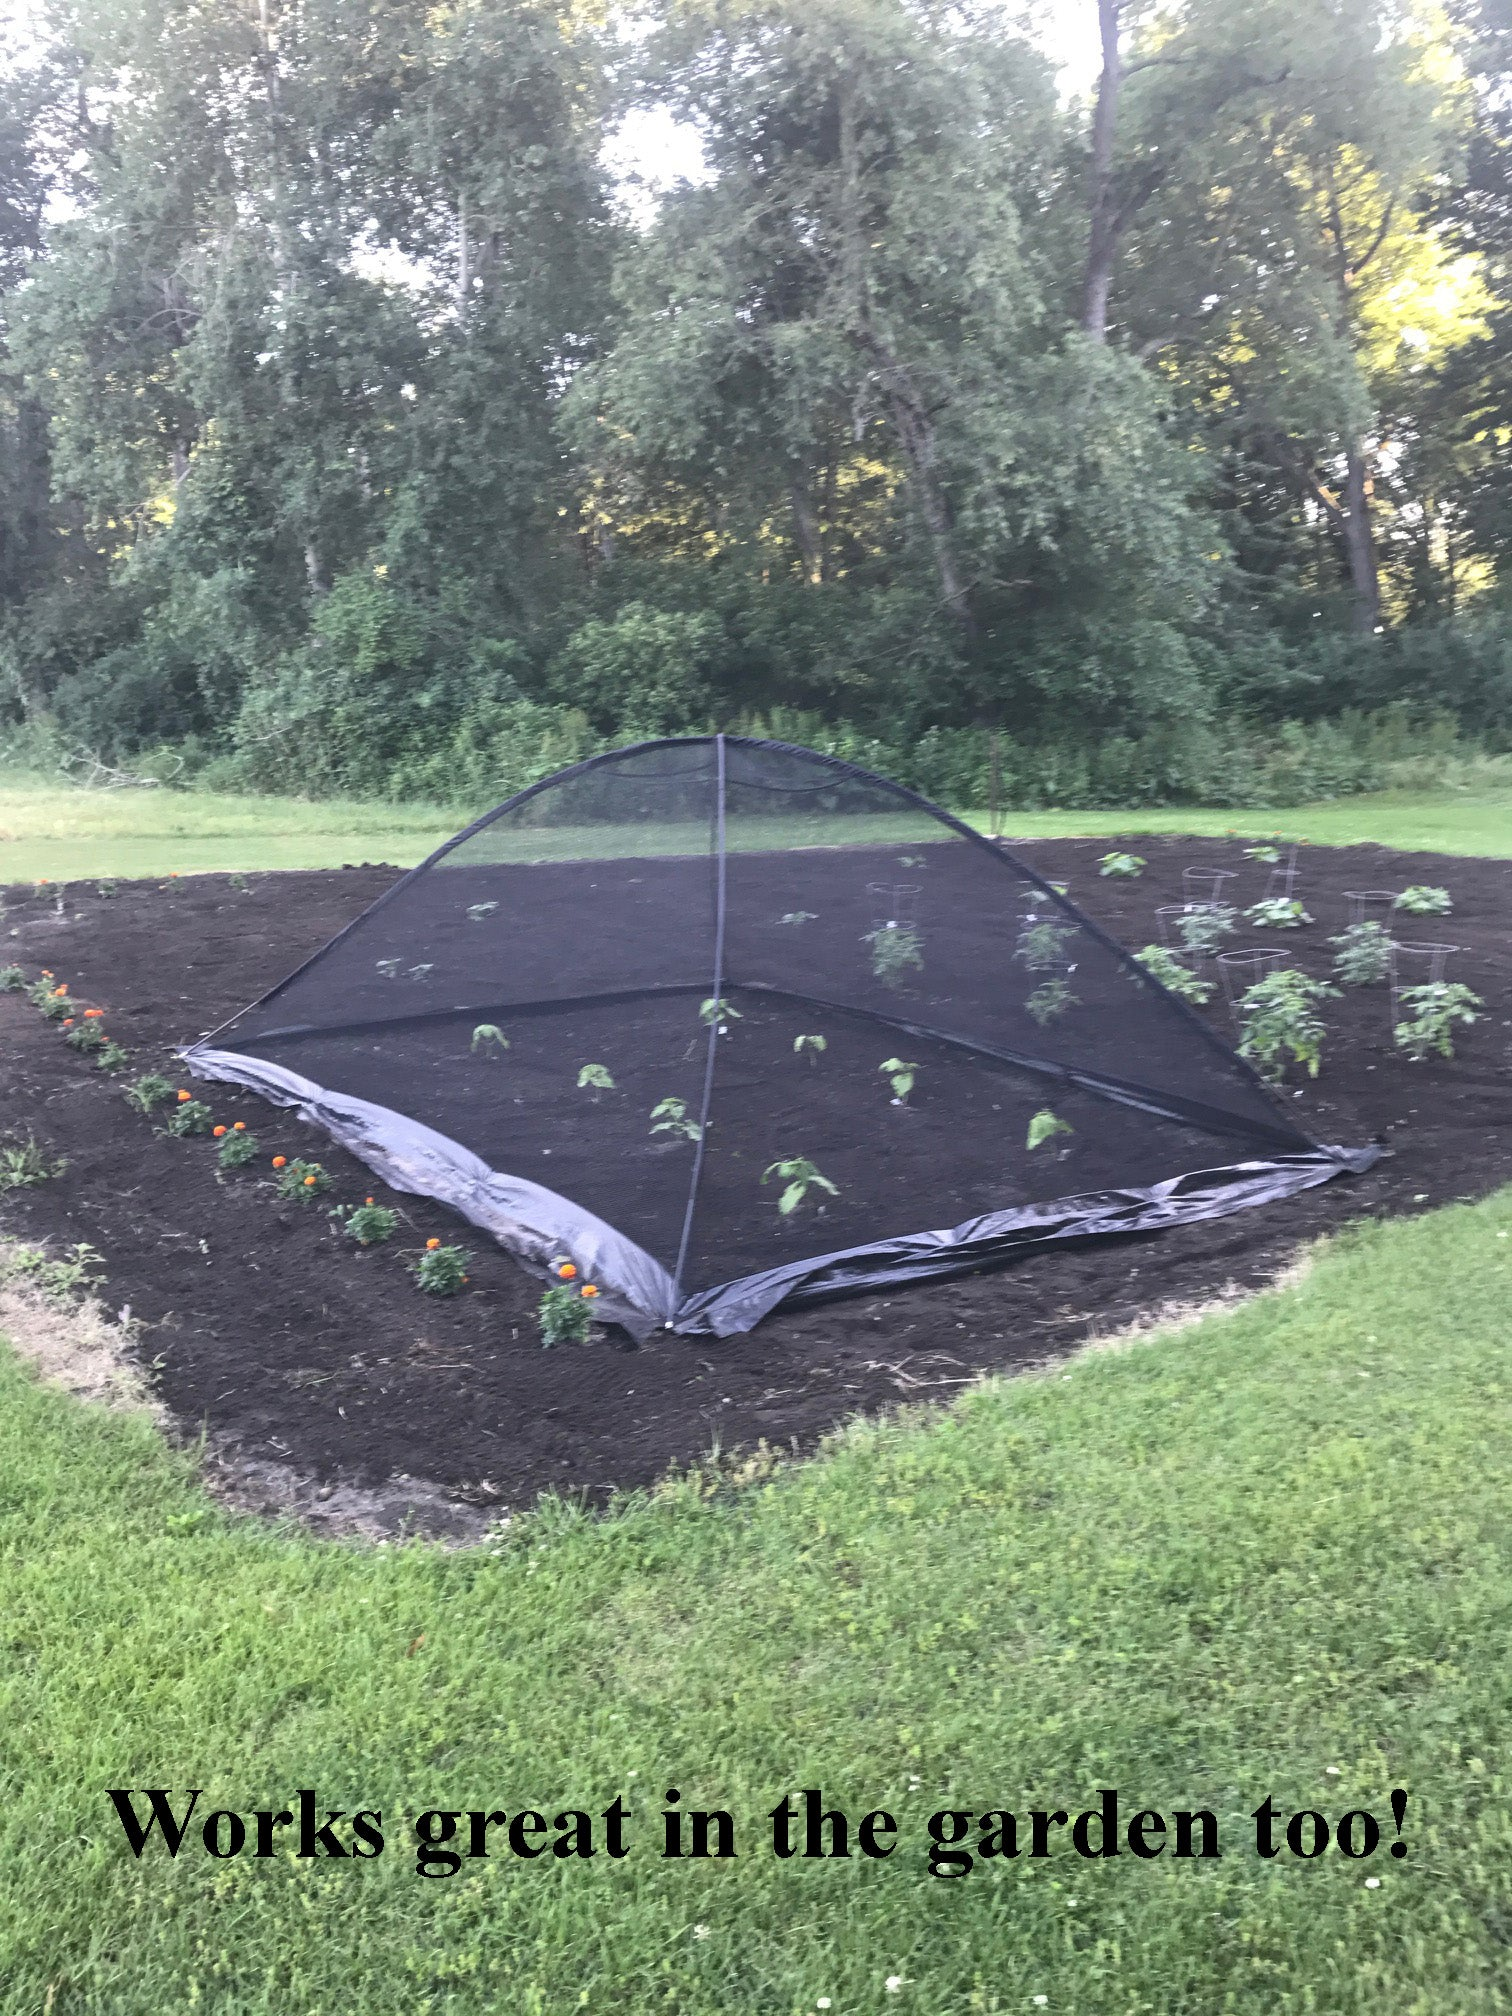 Easypro Pond Net Tents Protect Gardens Too Great